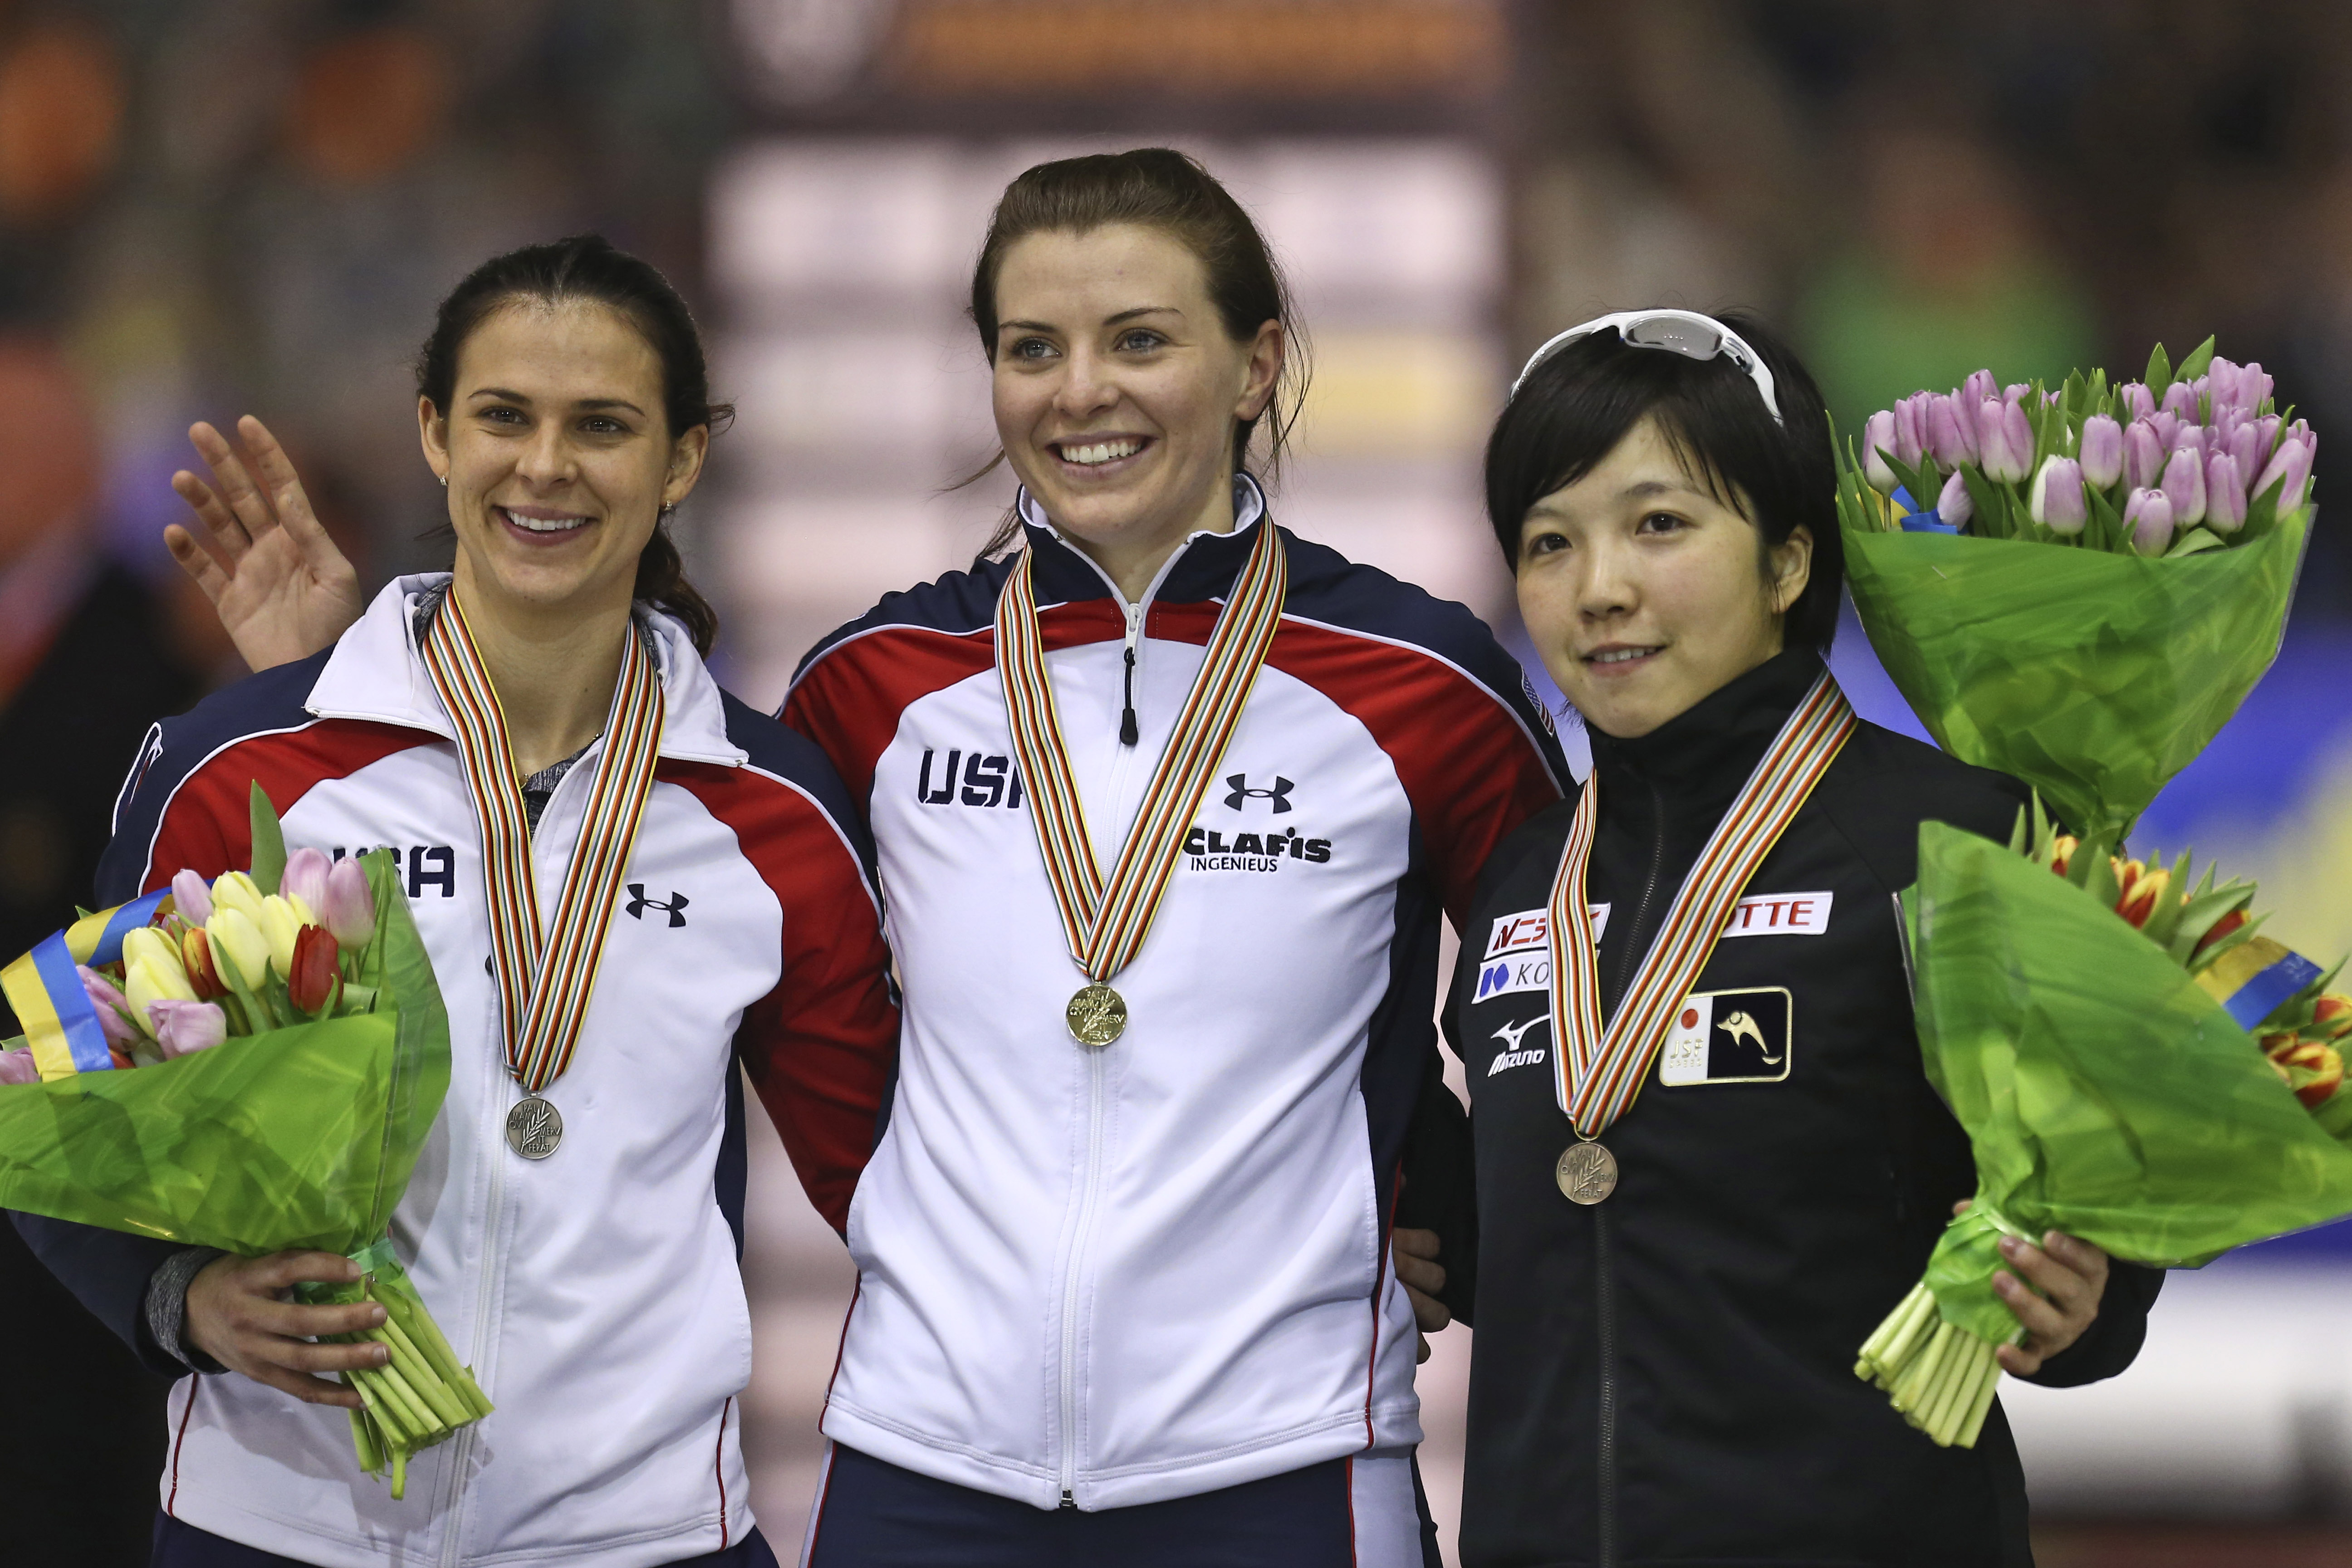 New world champion Heather Richardson of the U.S., center and gold medal, Brittany Bowe of the U.S., left and silver medal, and Nao Kodaira of Japan, right and bronze medal, pose on the podium of the women's 500 meter race of the speedskating single distance world championships at Thialf ice rink in Heerenveen, Netherlands, Saturday, Feb. 14, 2015. (AP Photo/Peter Dejong)